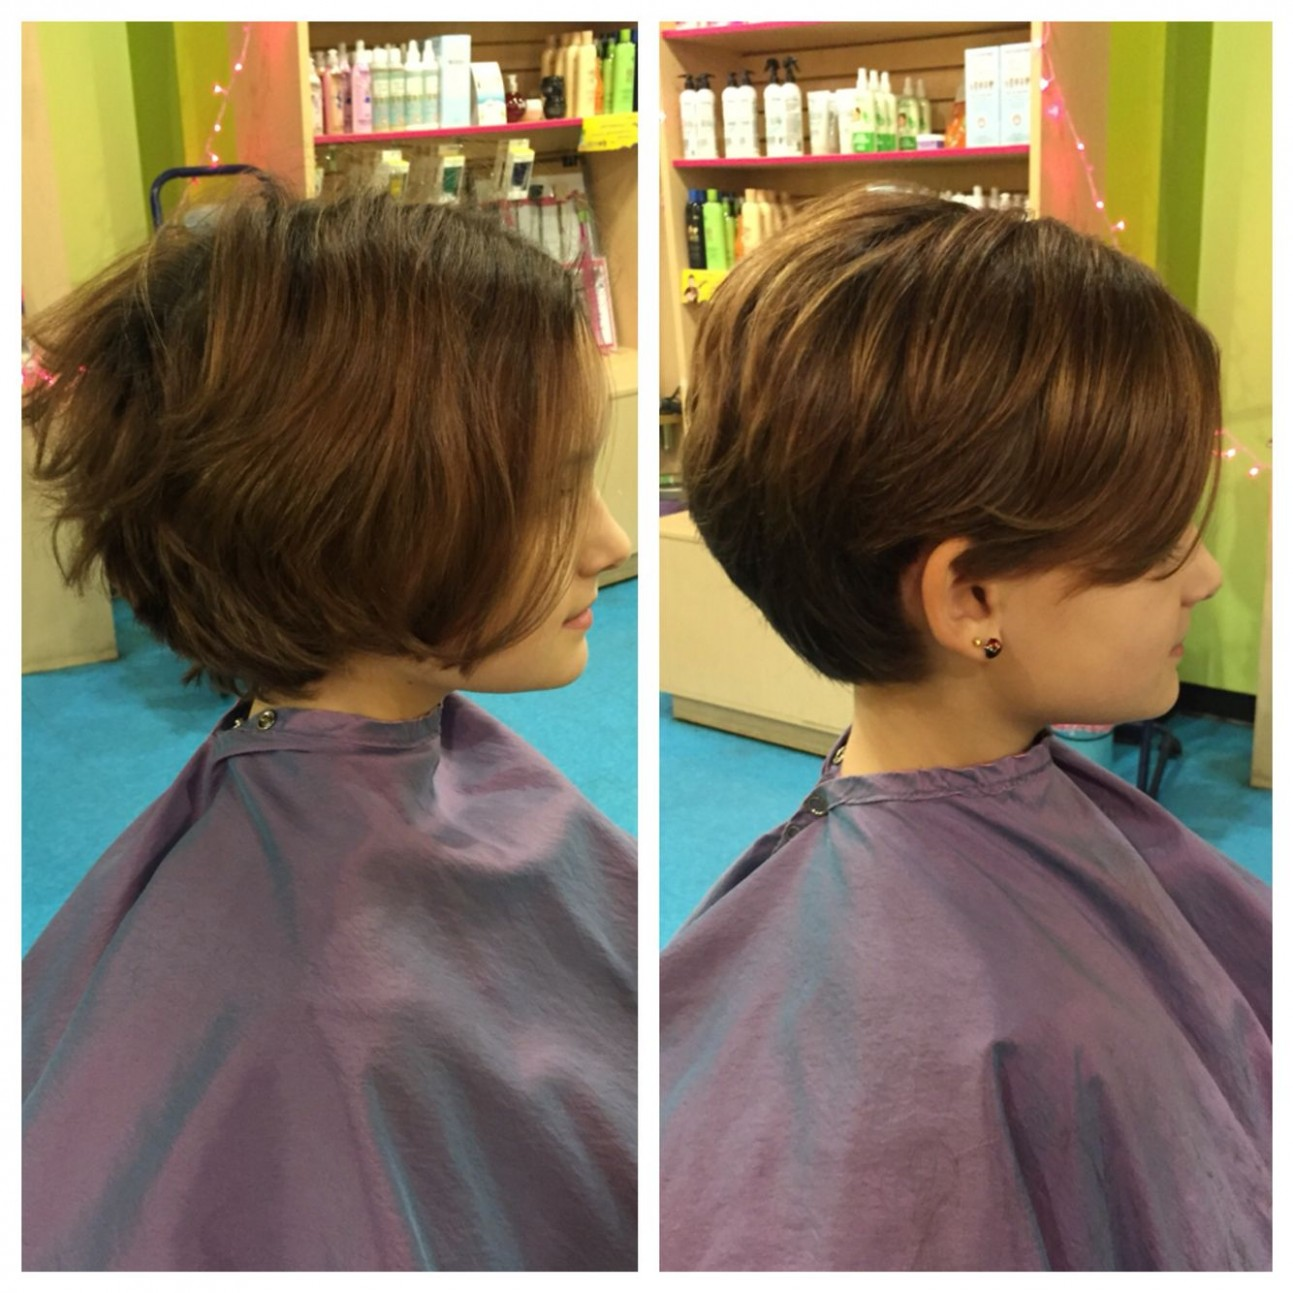 Pixie #haircut #kid #beforeandafter By Yours Truly @amy Ziegler Kids Pixie Cut